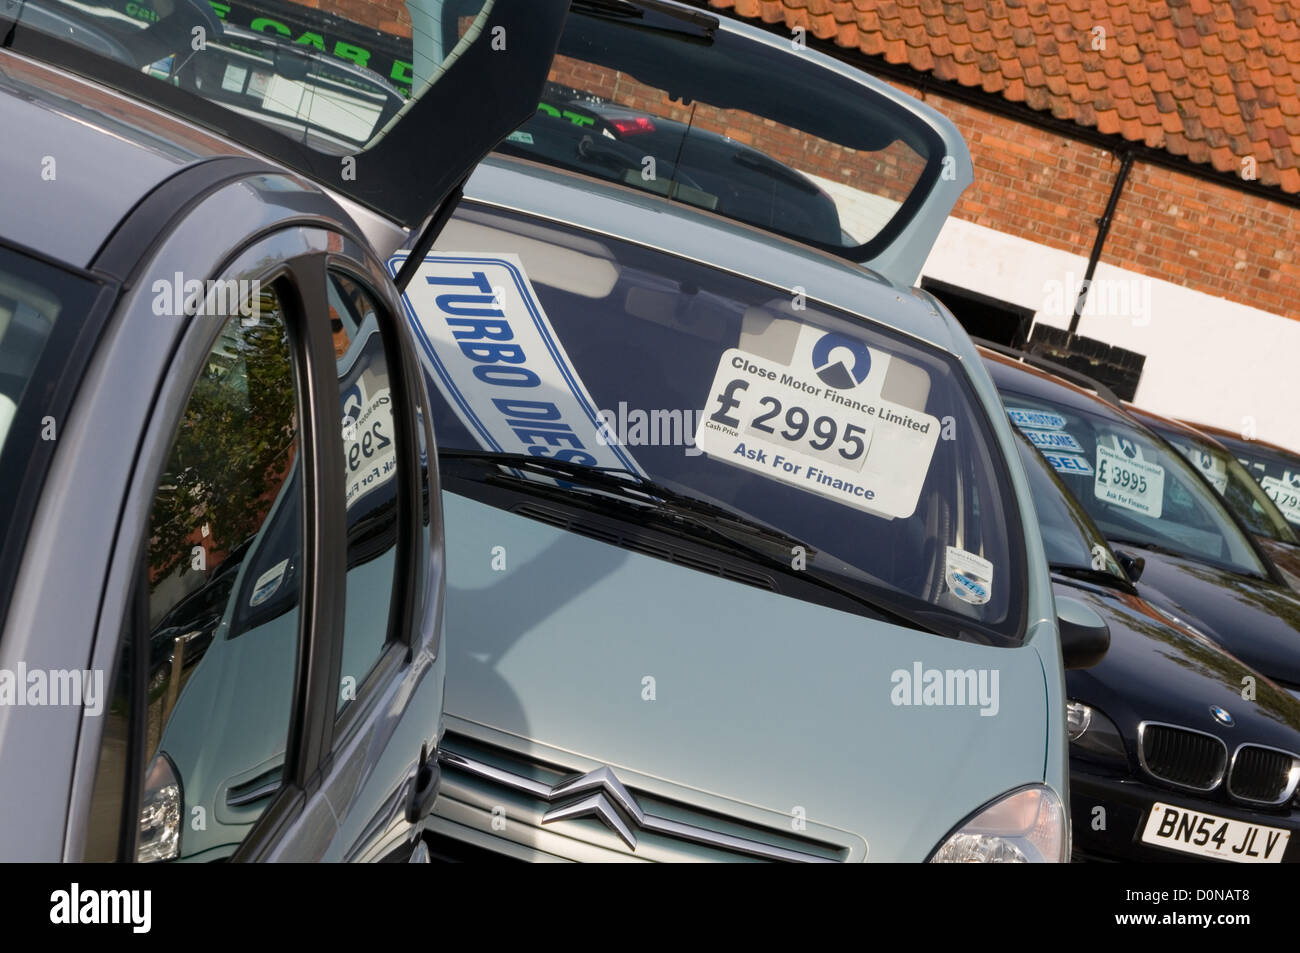 Used Car Lot Sale Stock Photos & Used Car Lot Sale Stock Images - Alamy